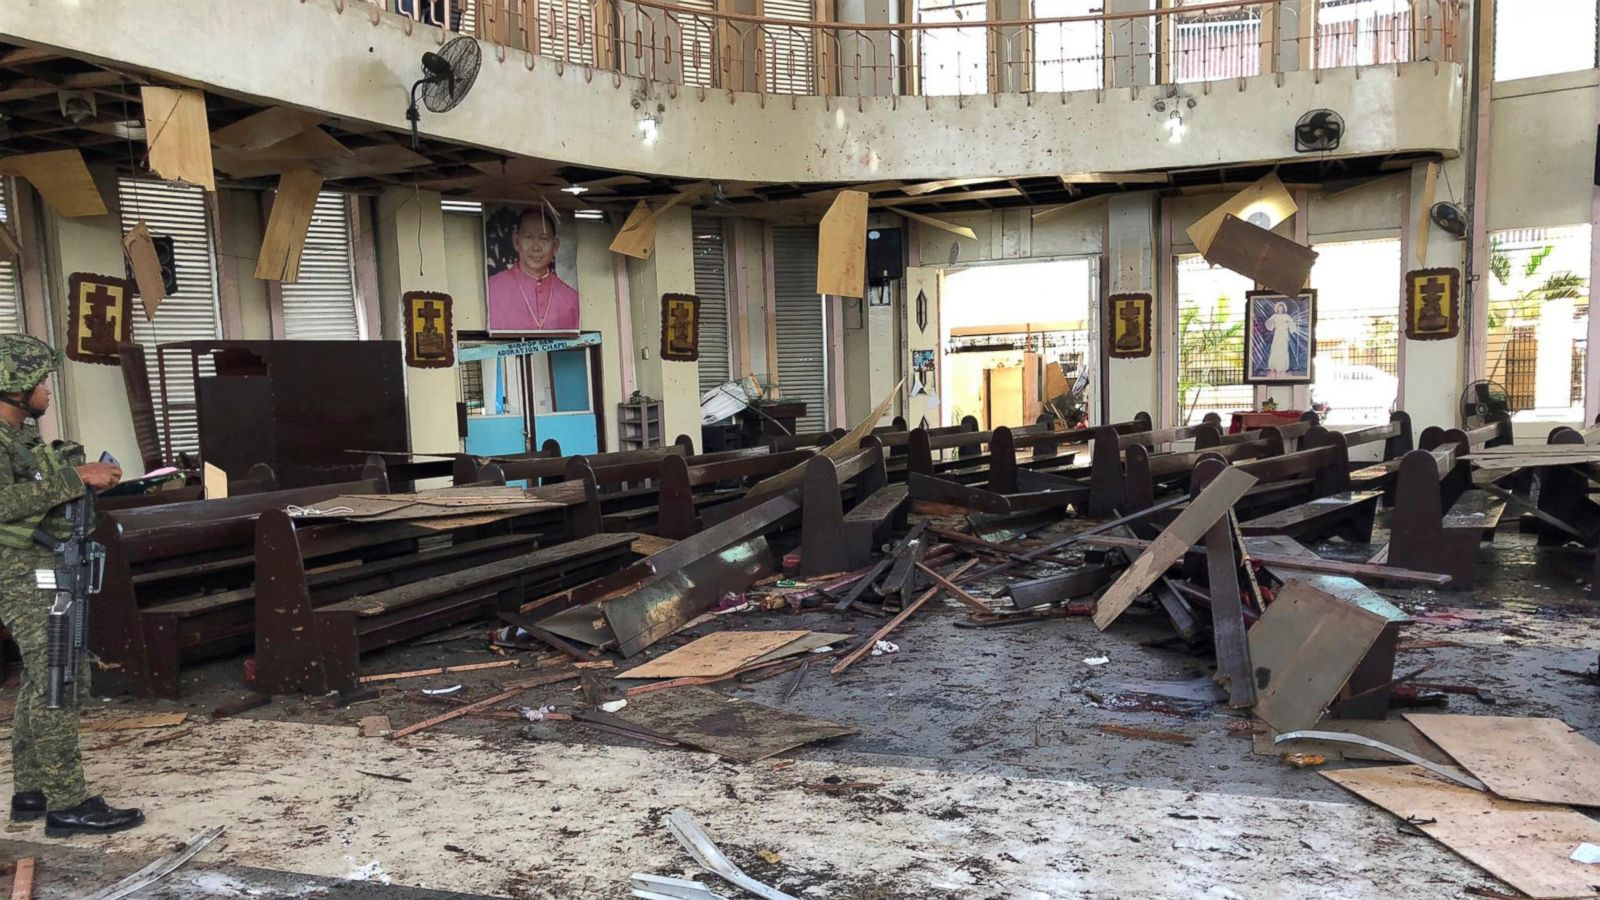 27 dead as bombs hit cathedral in Philippines during Mass